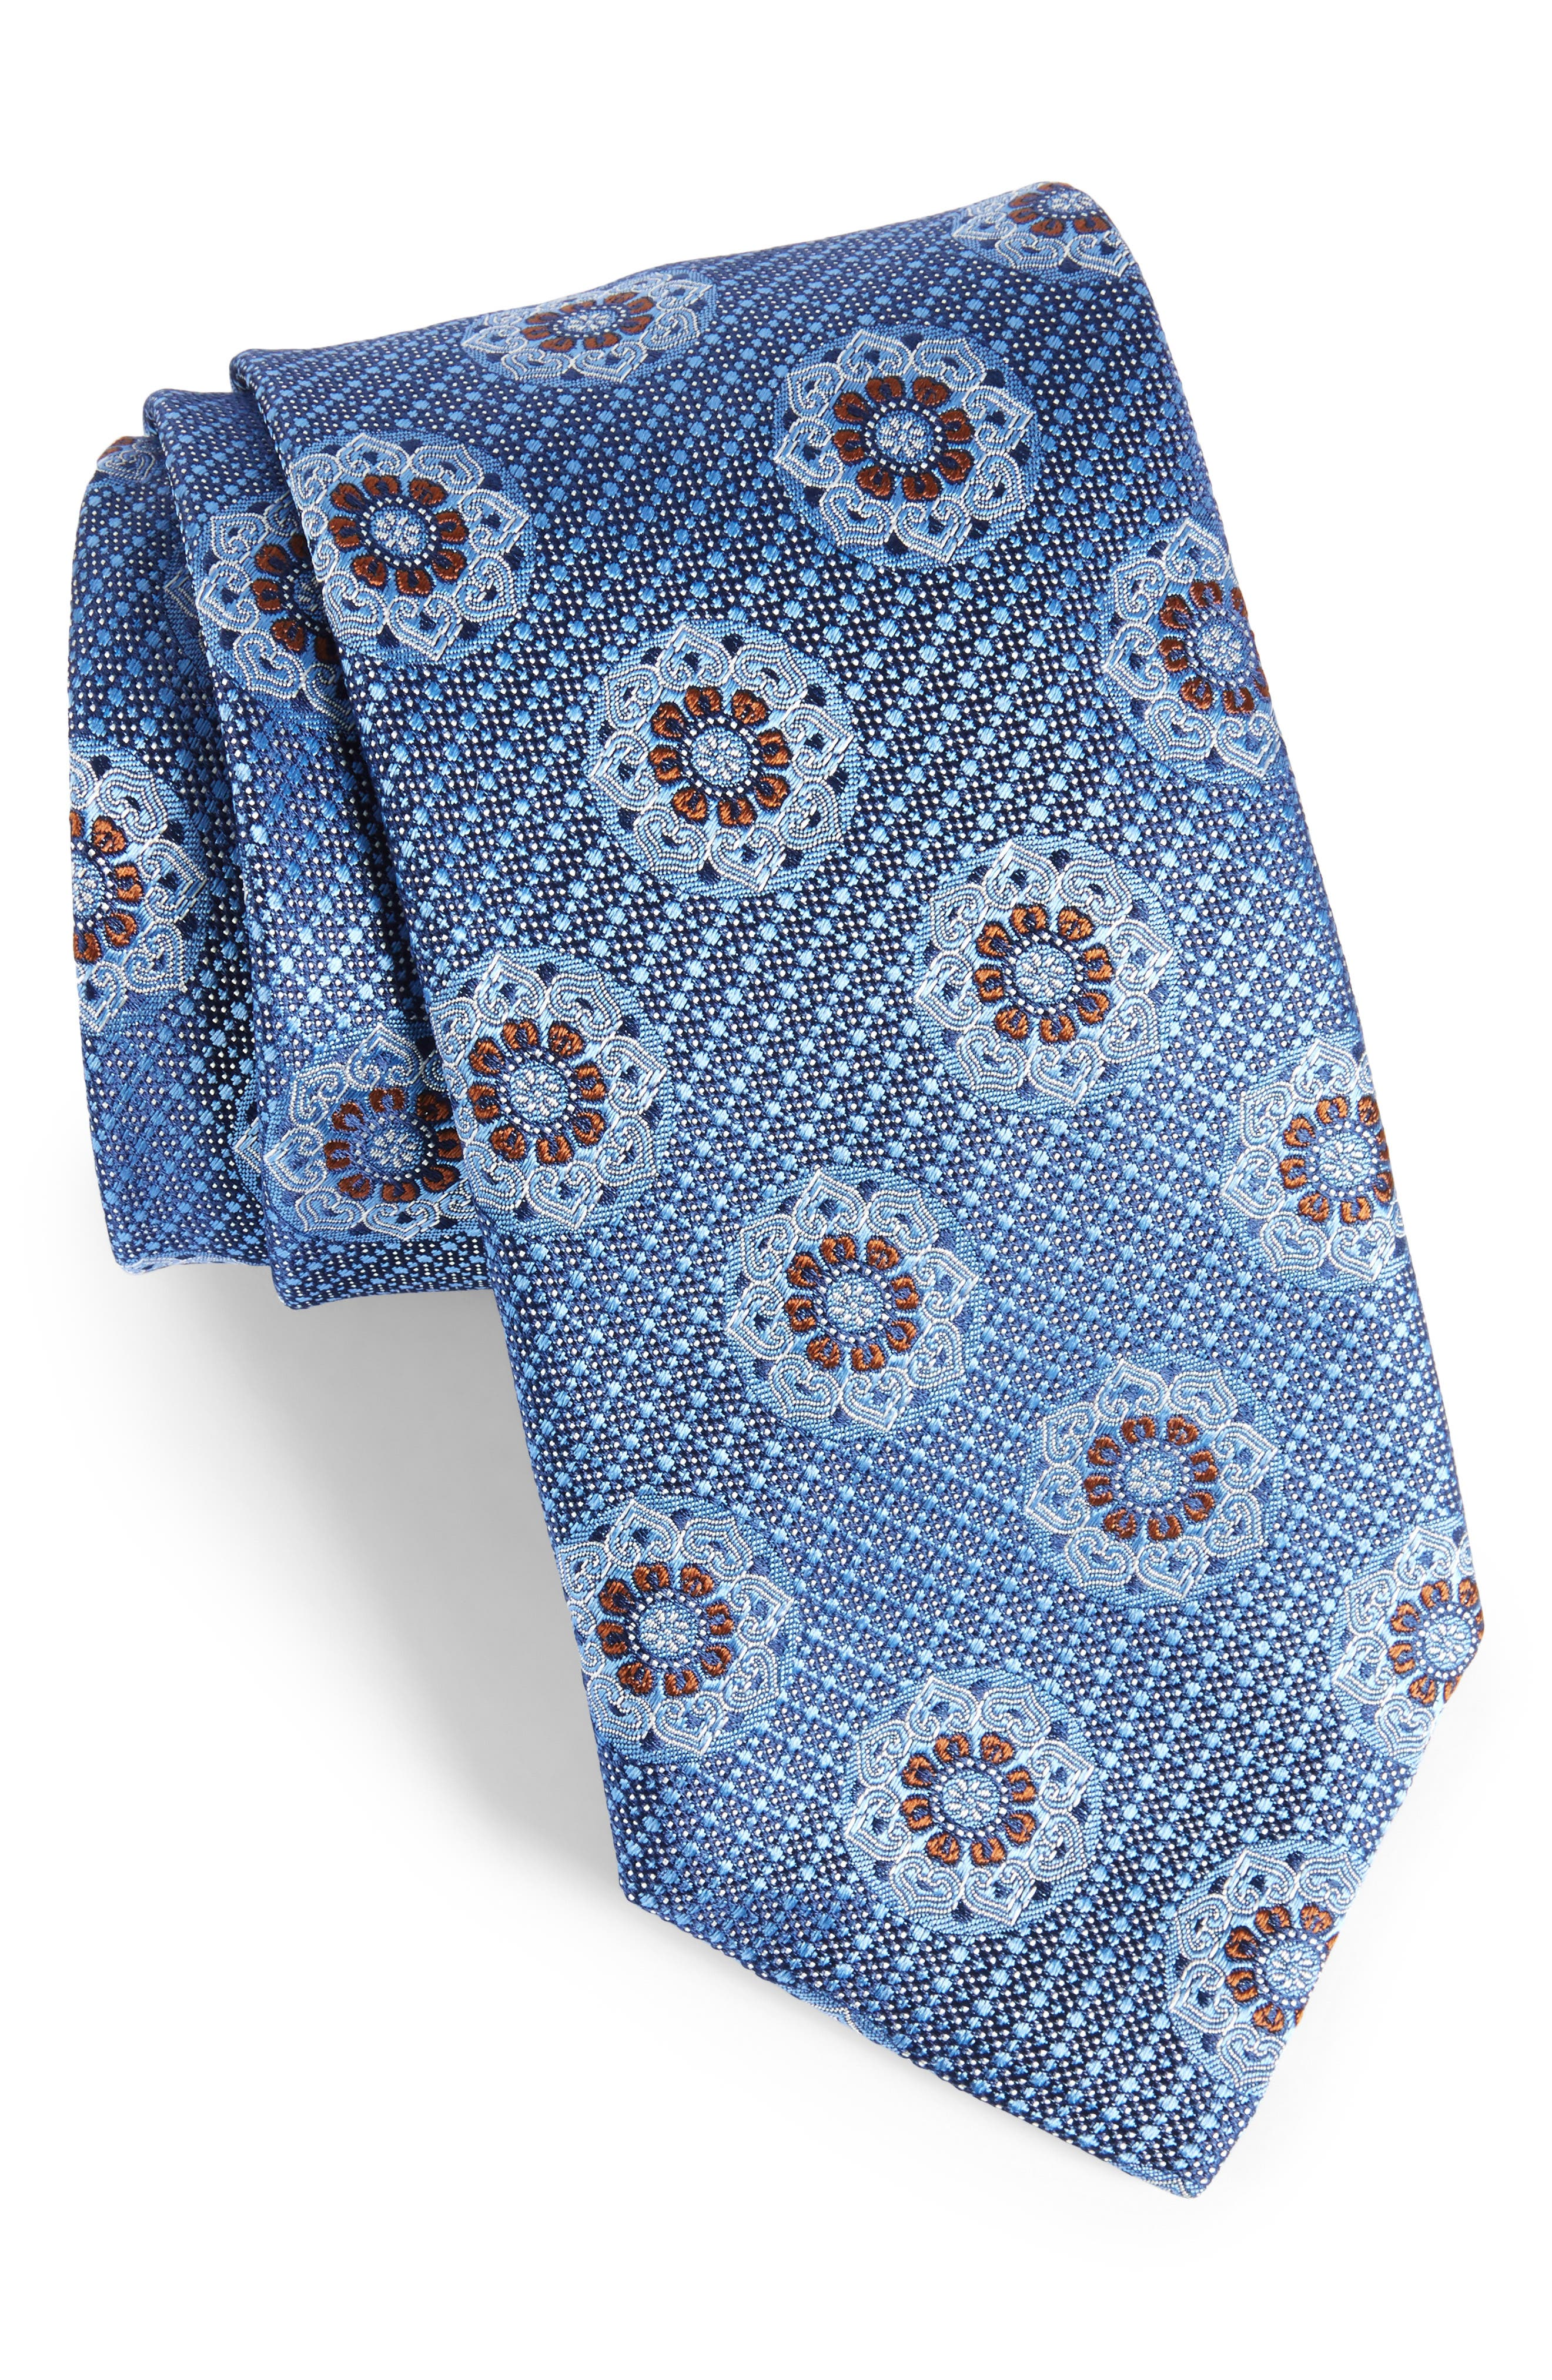 Main Image - Canali Medallion Silk Tie (X-Long)